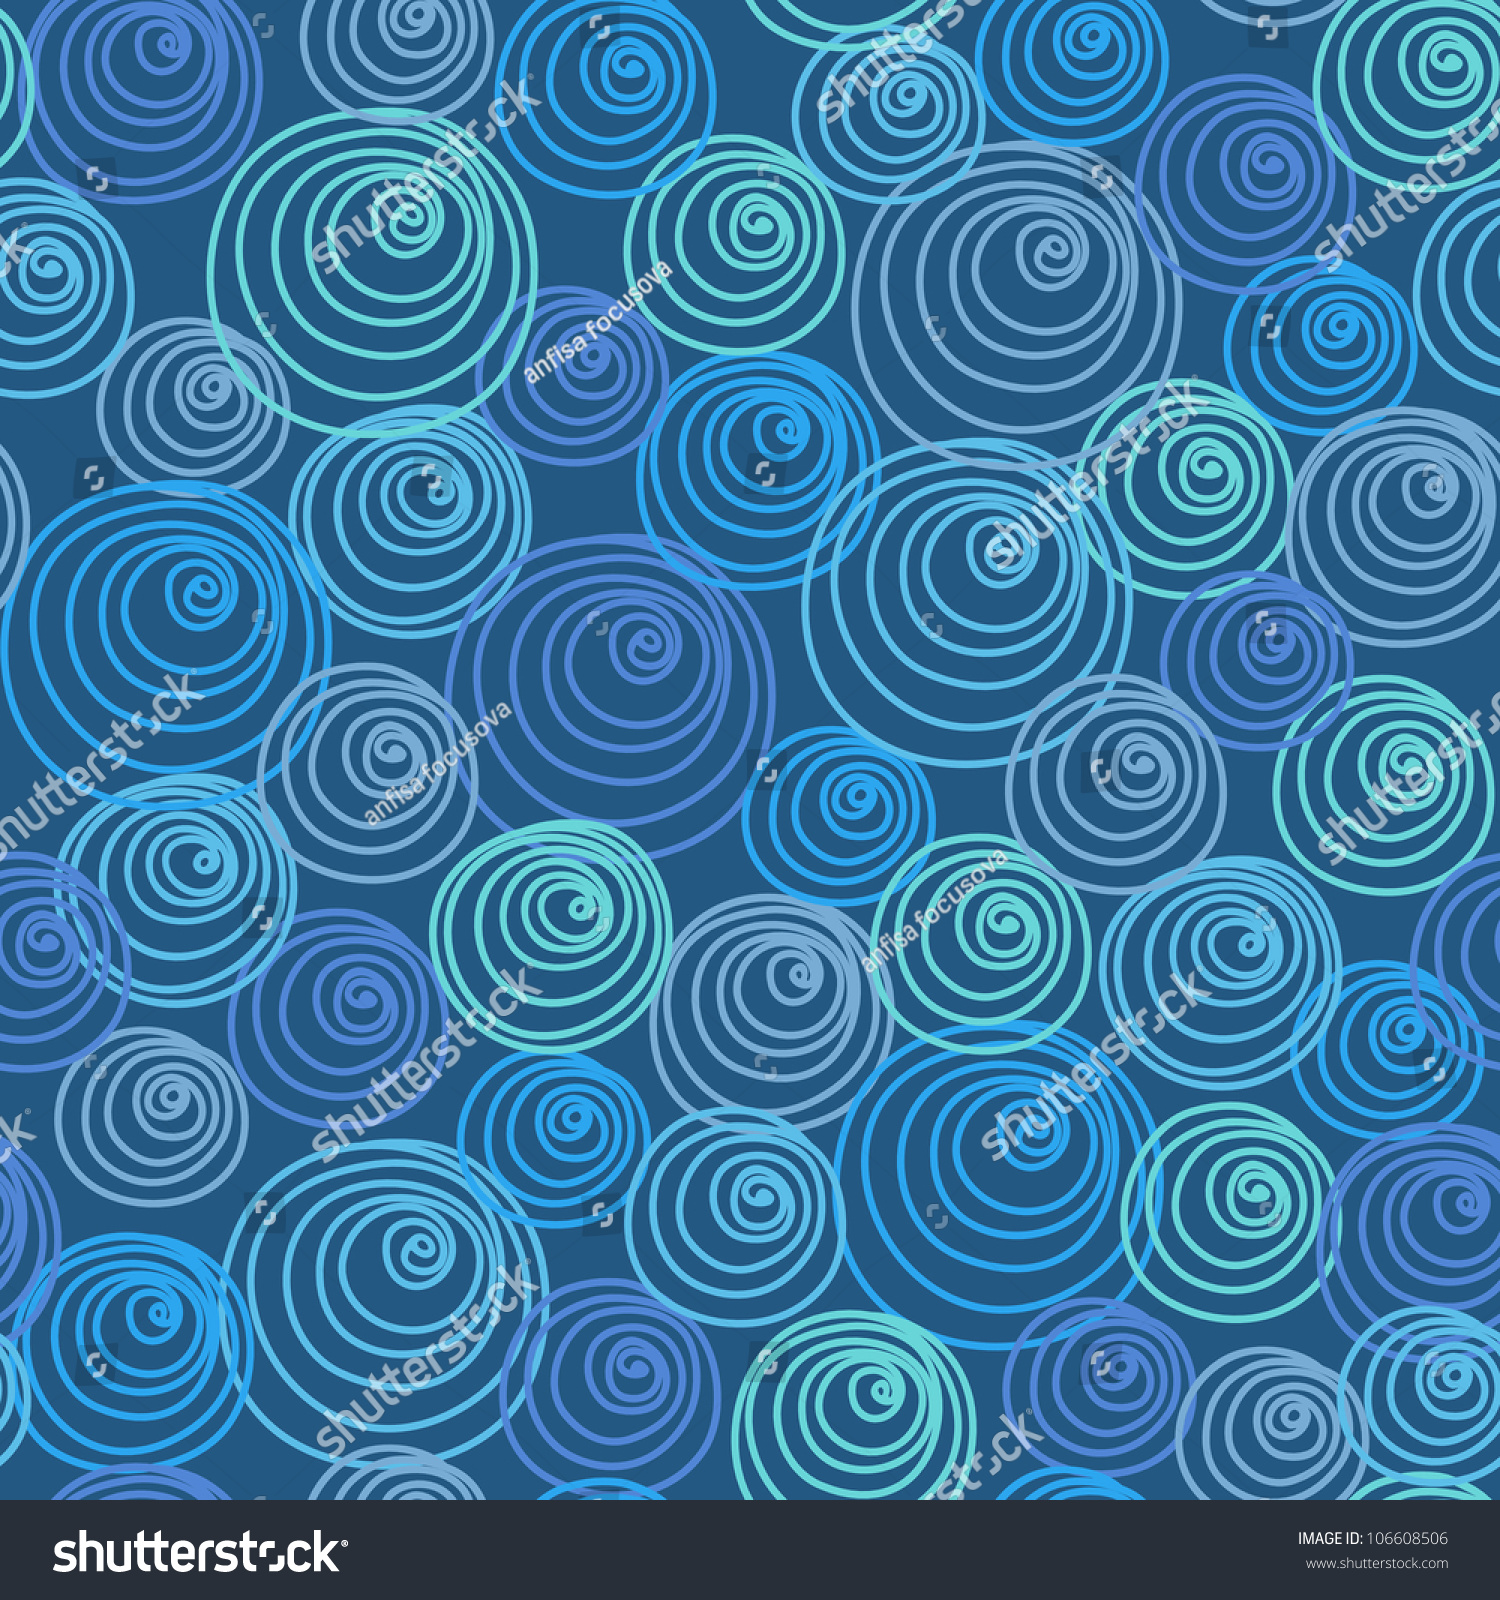 Of Doodles Dark Blue Background With Stylized Texture Of Water